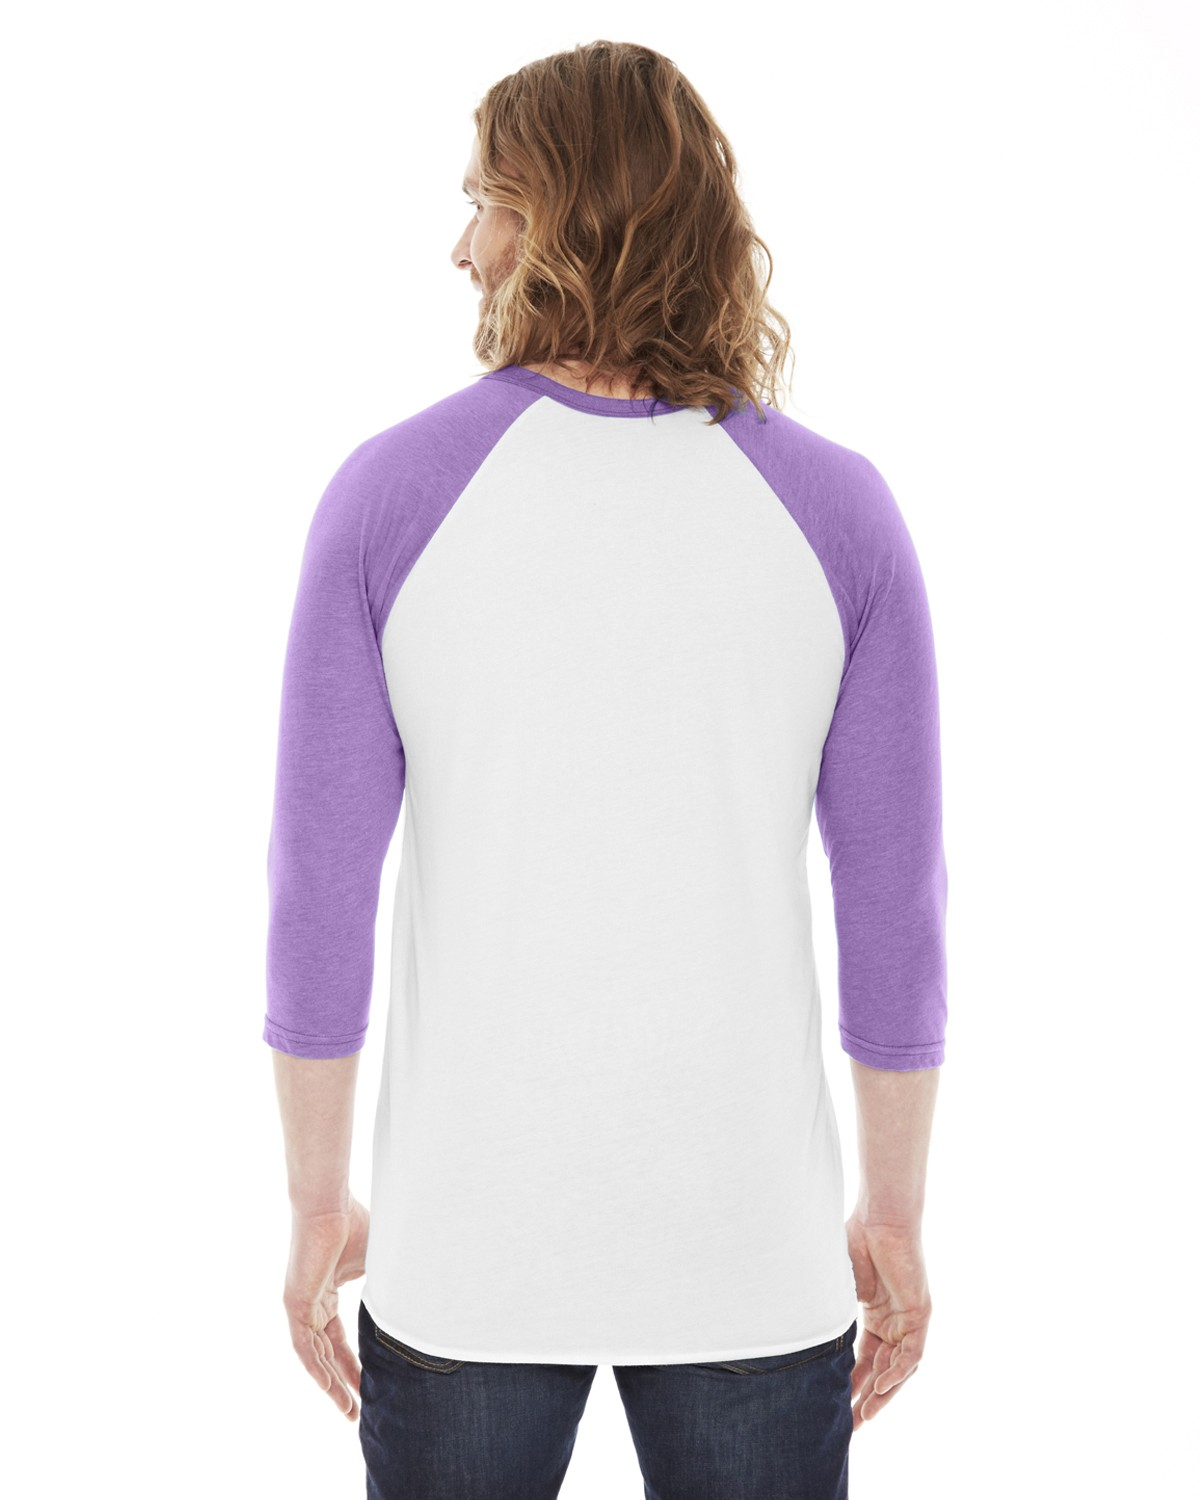 BB453W American Apparel WHITE/ORCHID